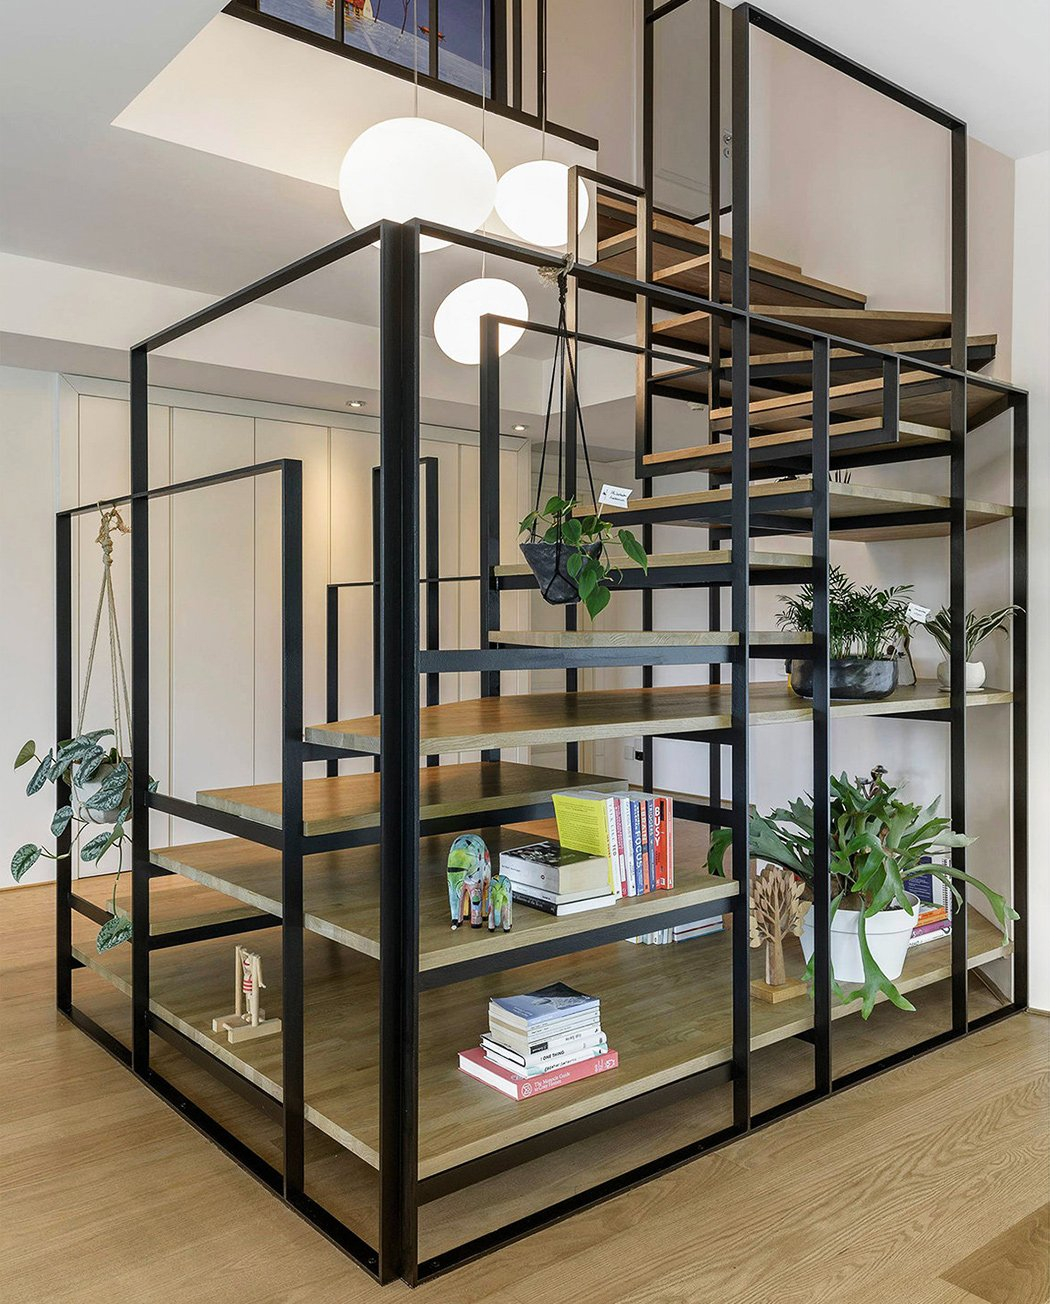 Creative Staircase Design Ideas: Staircase Designs That Will Uplift Any Space: Part 2